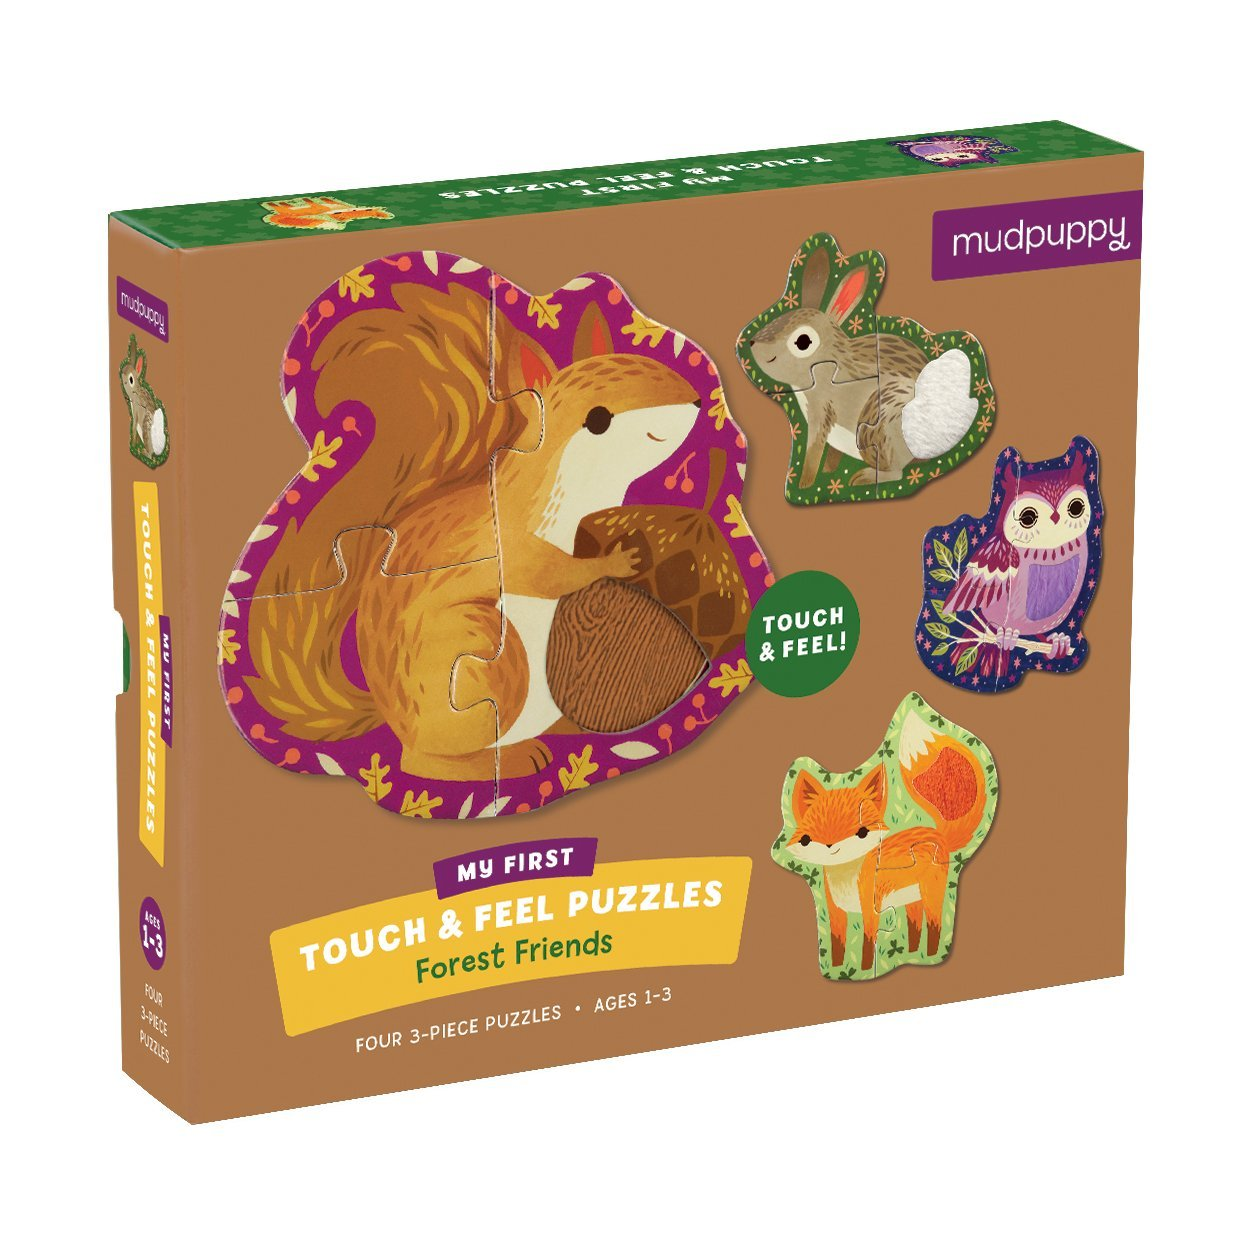 Forest Friends My First Touch & Feel Puzzles by Mudpuppy.